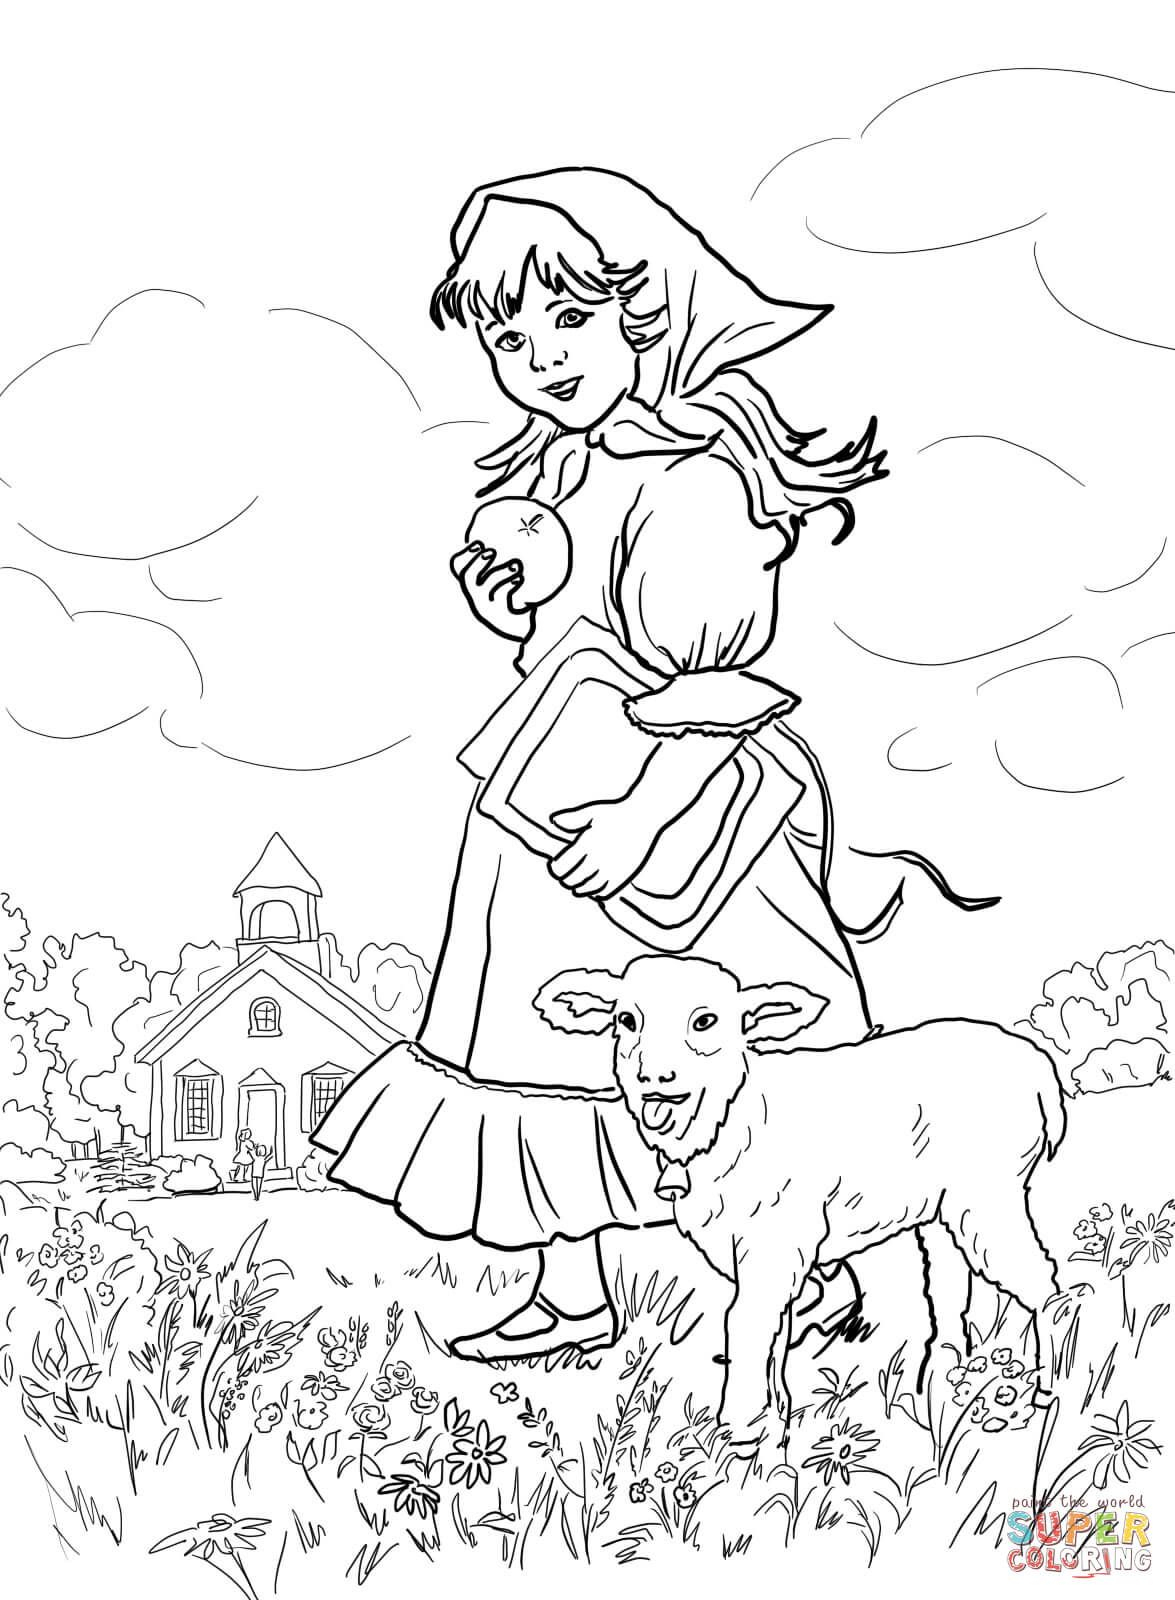 Mary Had A Little Lamb   Coloring Fairy Tale, Nursery Rhymes And - Free Printable Mother Goose Nursery Rhymes